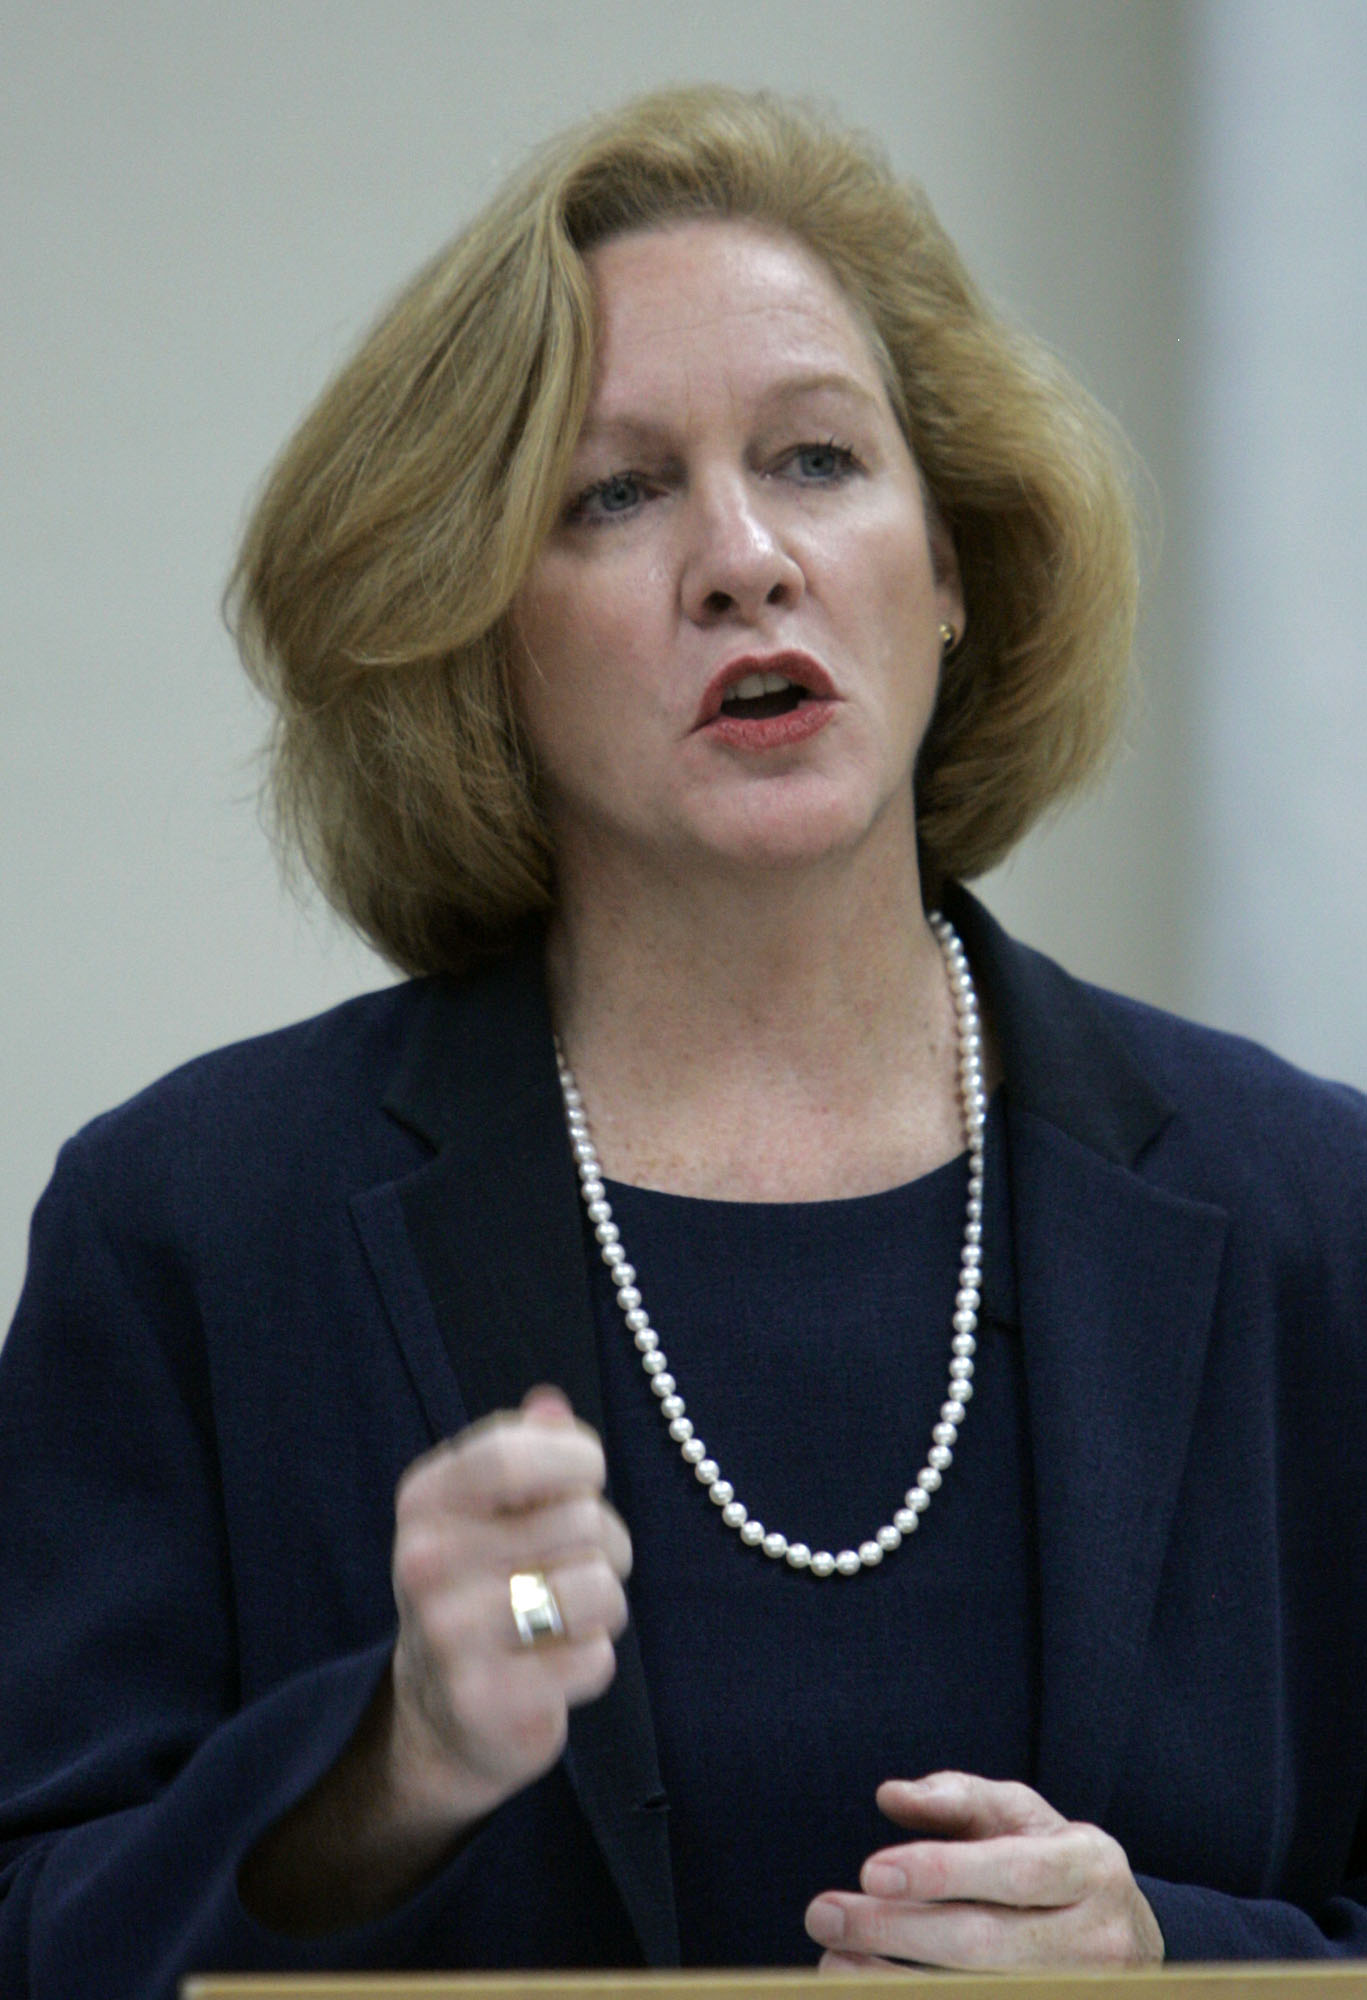 Jenny Durkan: First Openly Gay U.S. Attorney Enters Seattle Mayoral Race